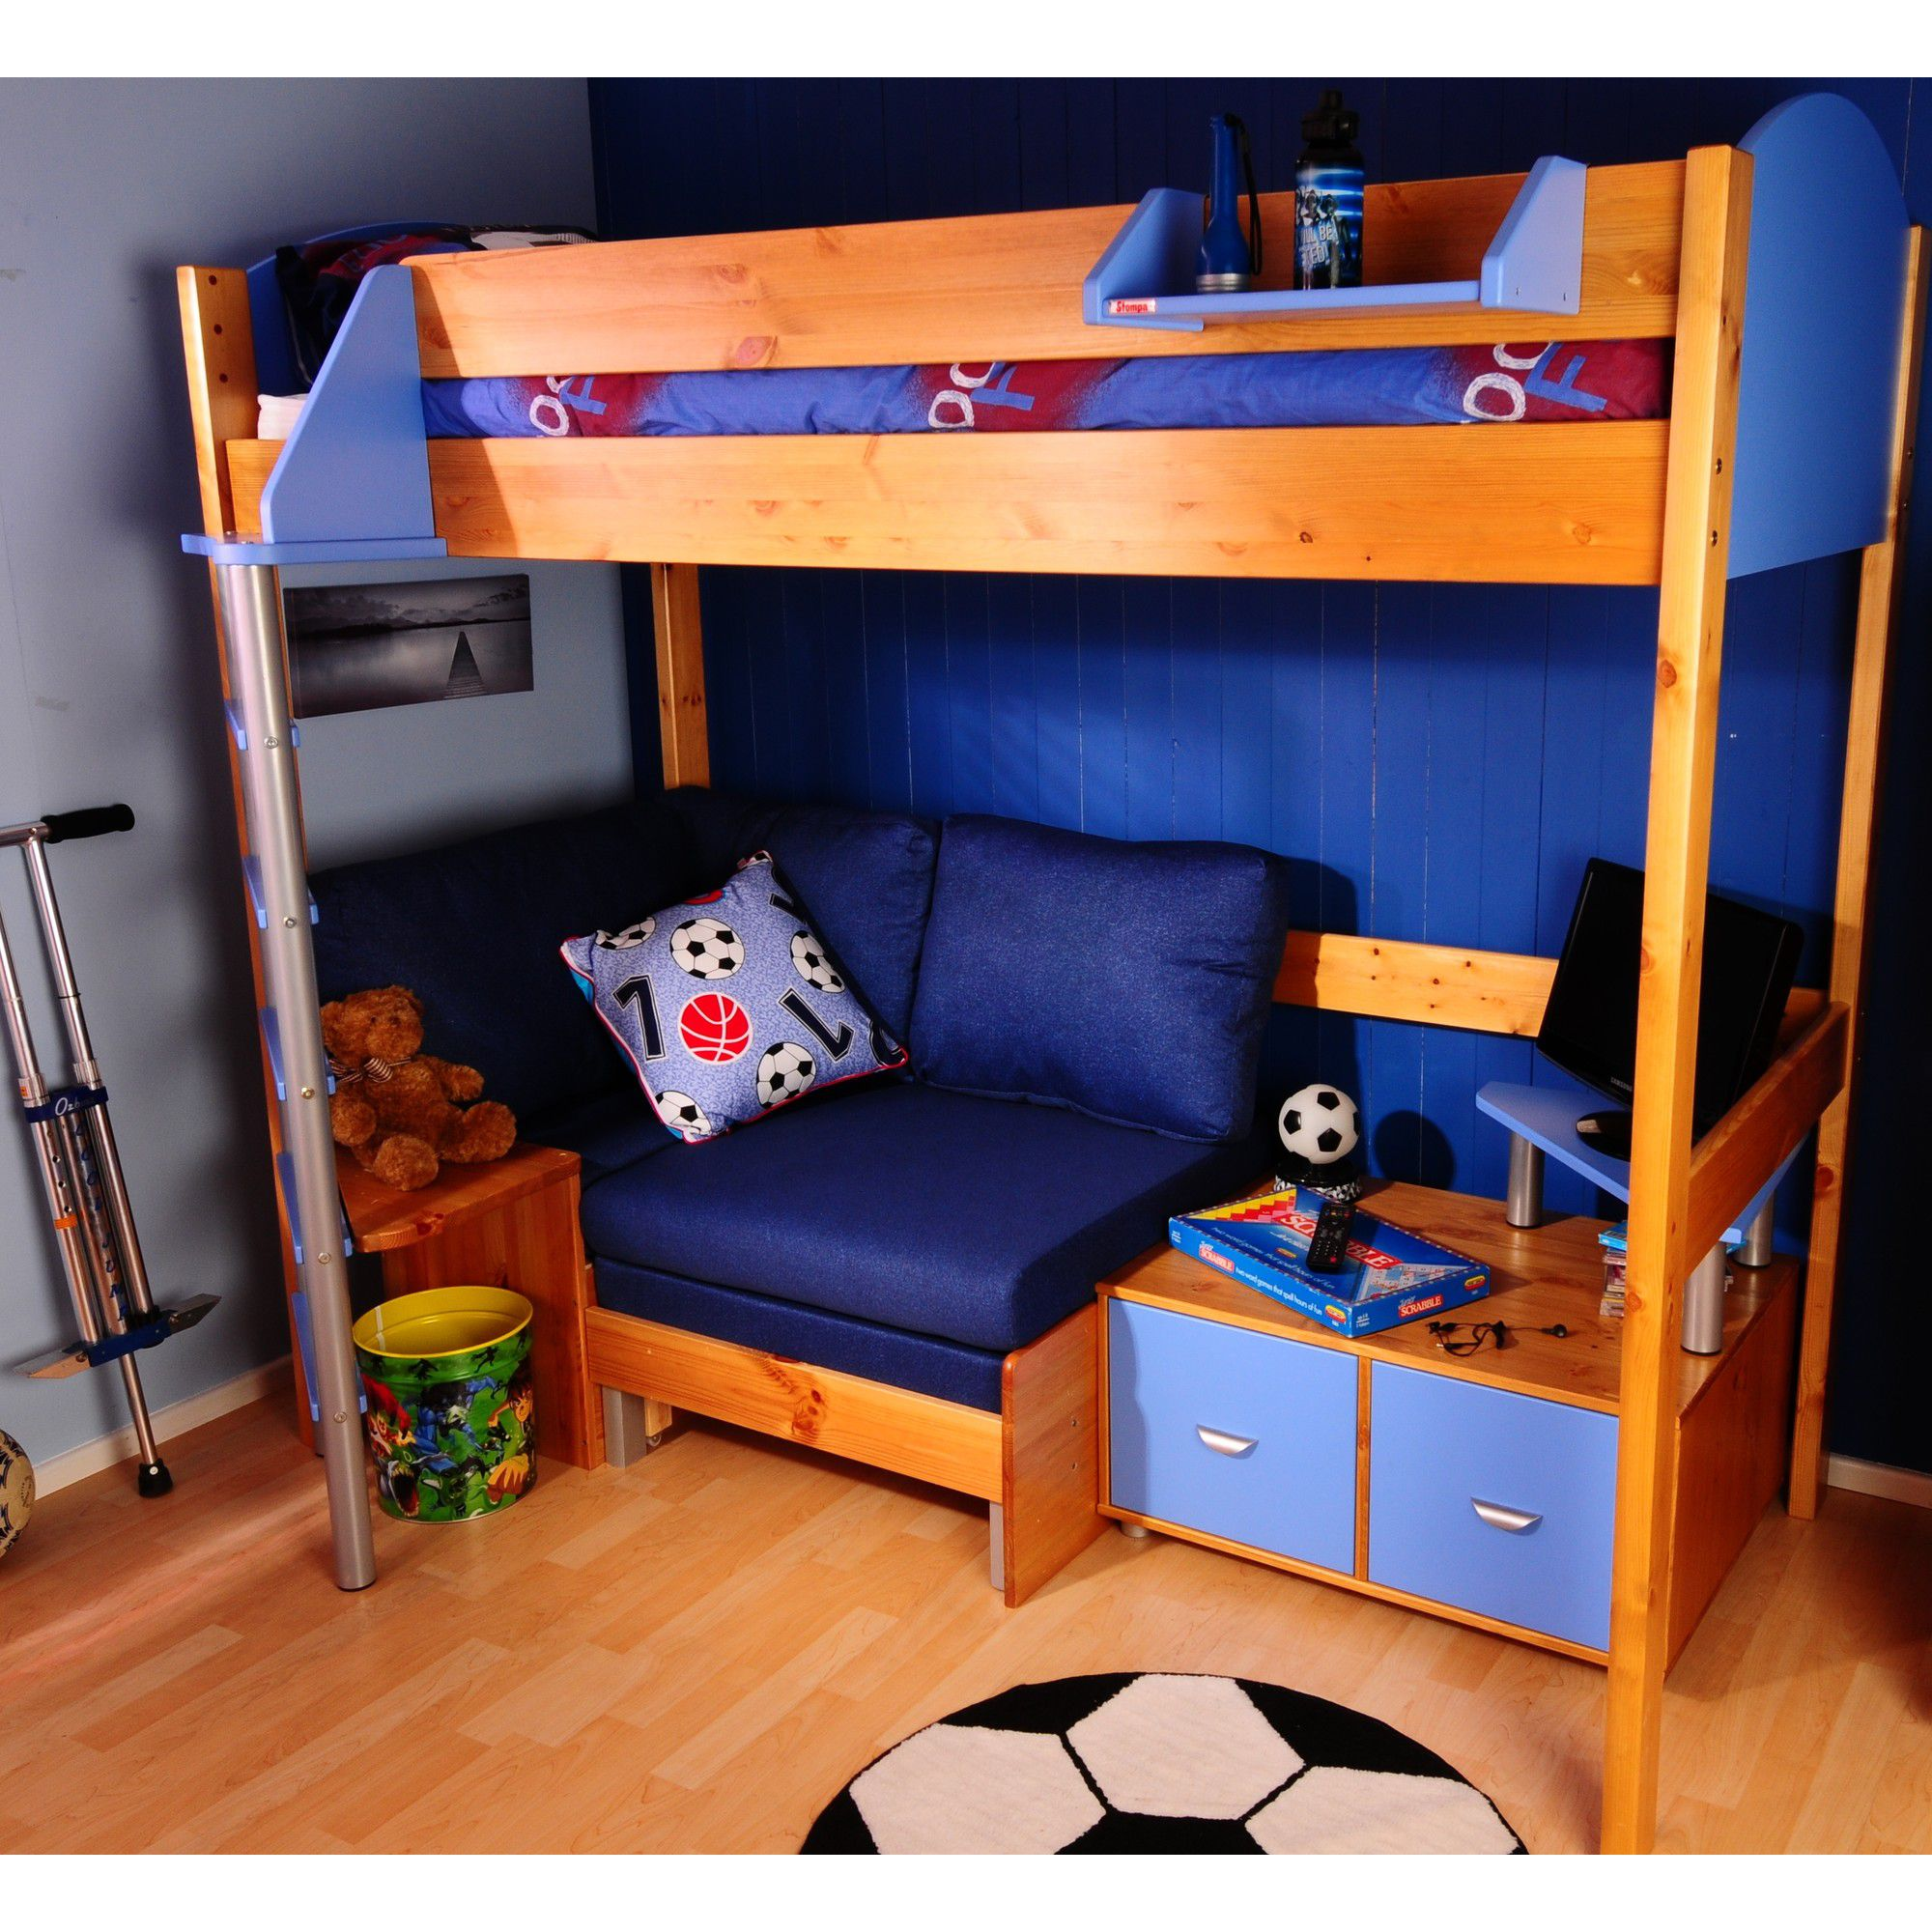 Stompa Casa High Sleeper Sofa Bed with 2 Cube Unit and TV Stand - Antique - Blue - Pink at Tesco Direct